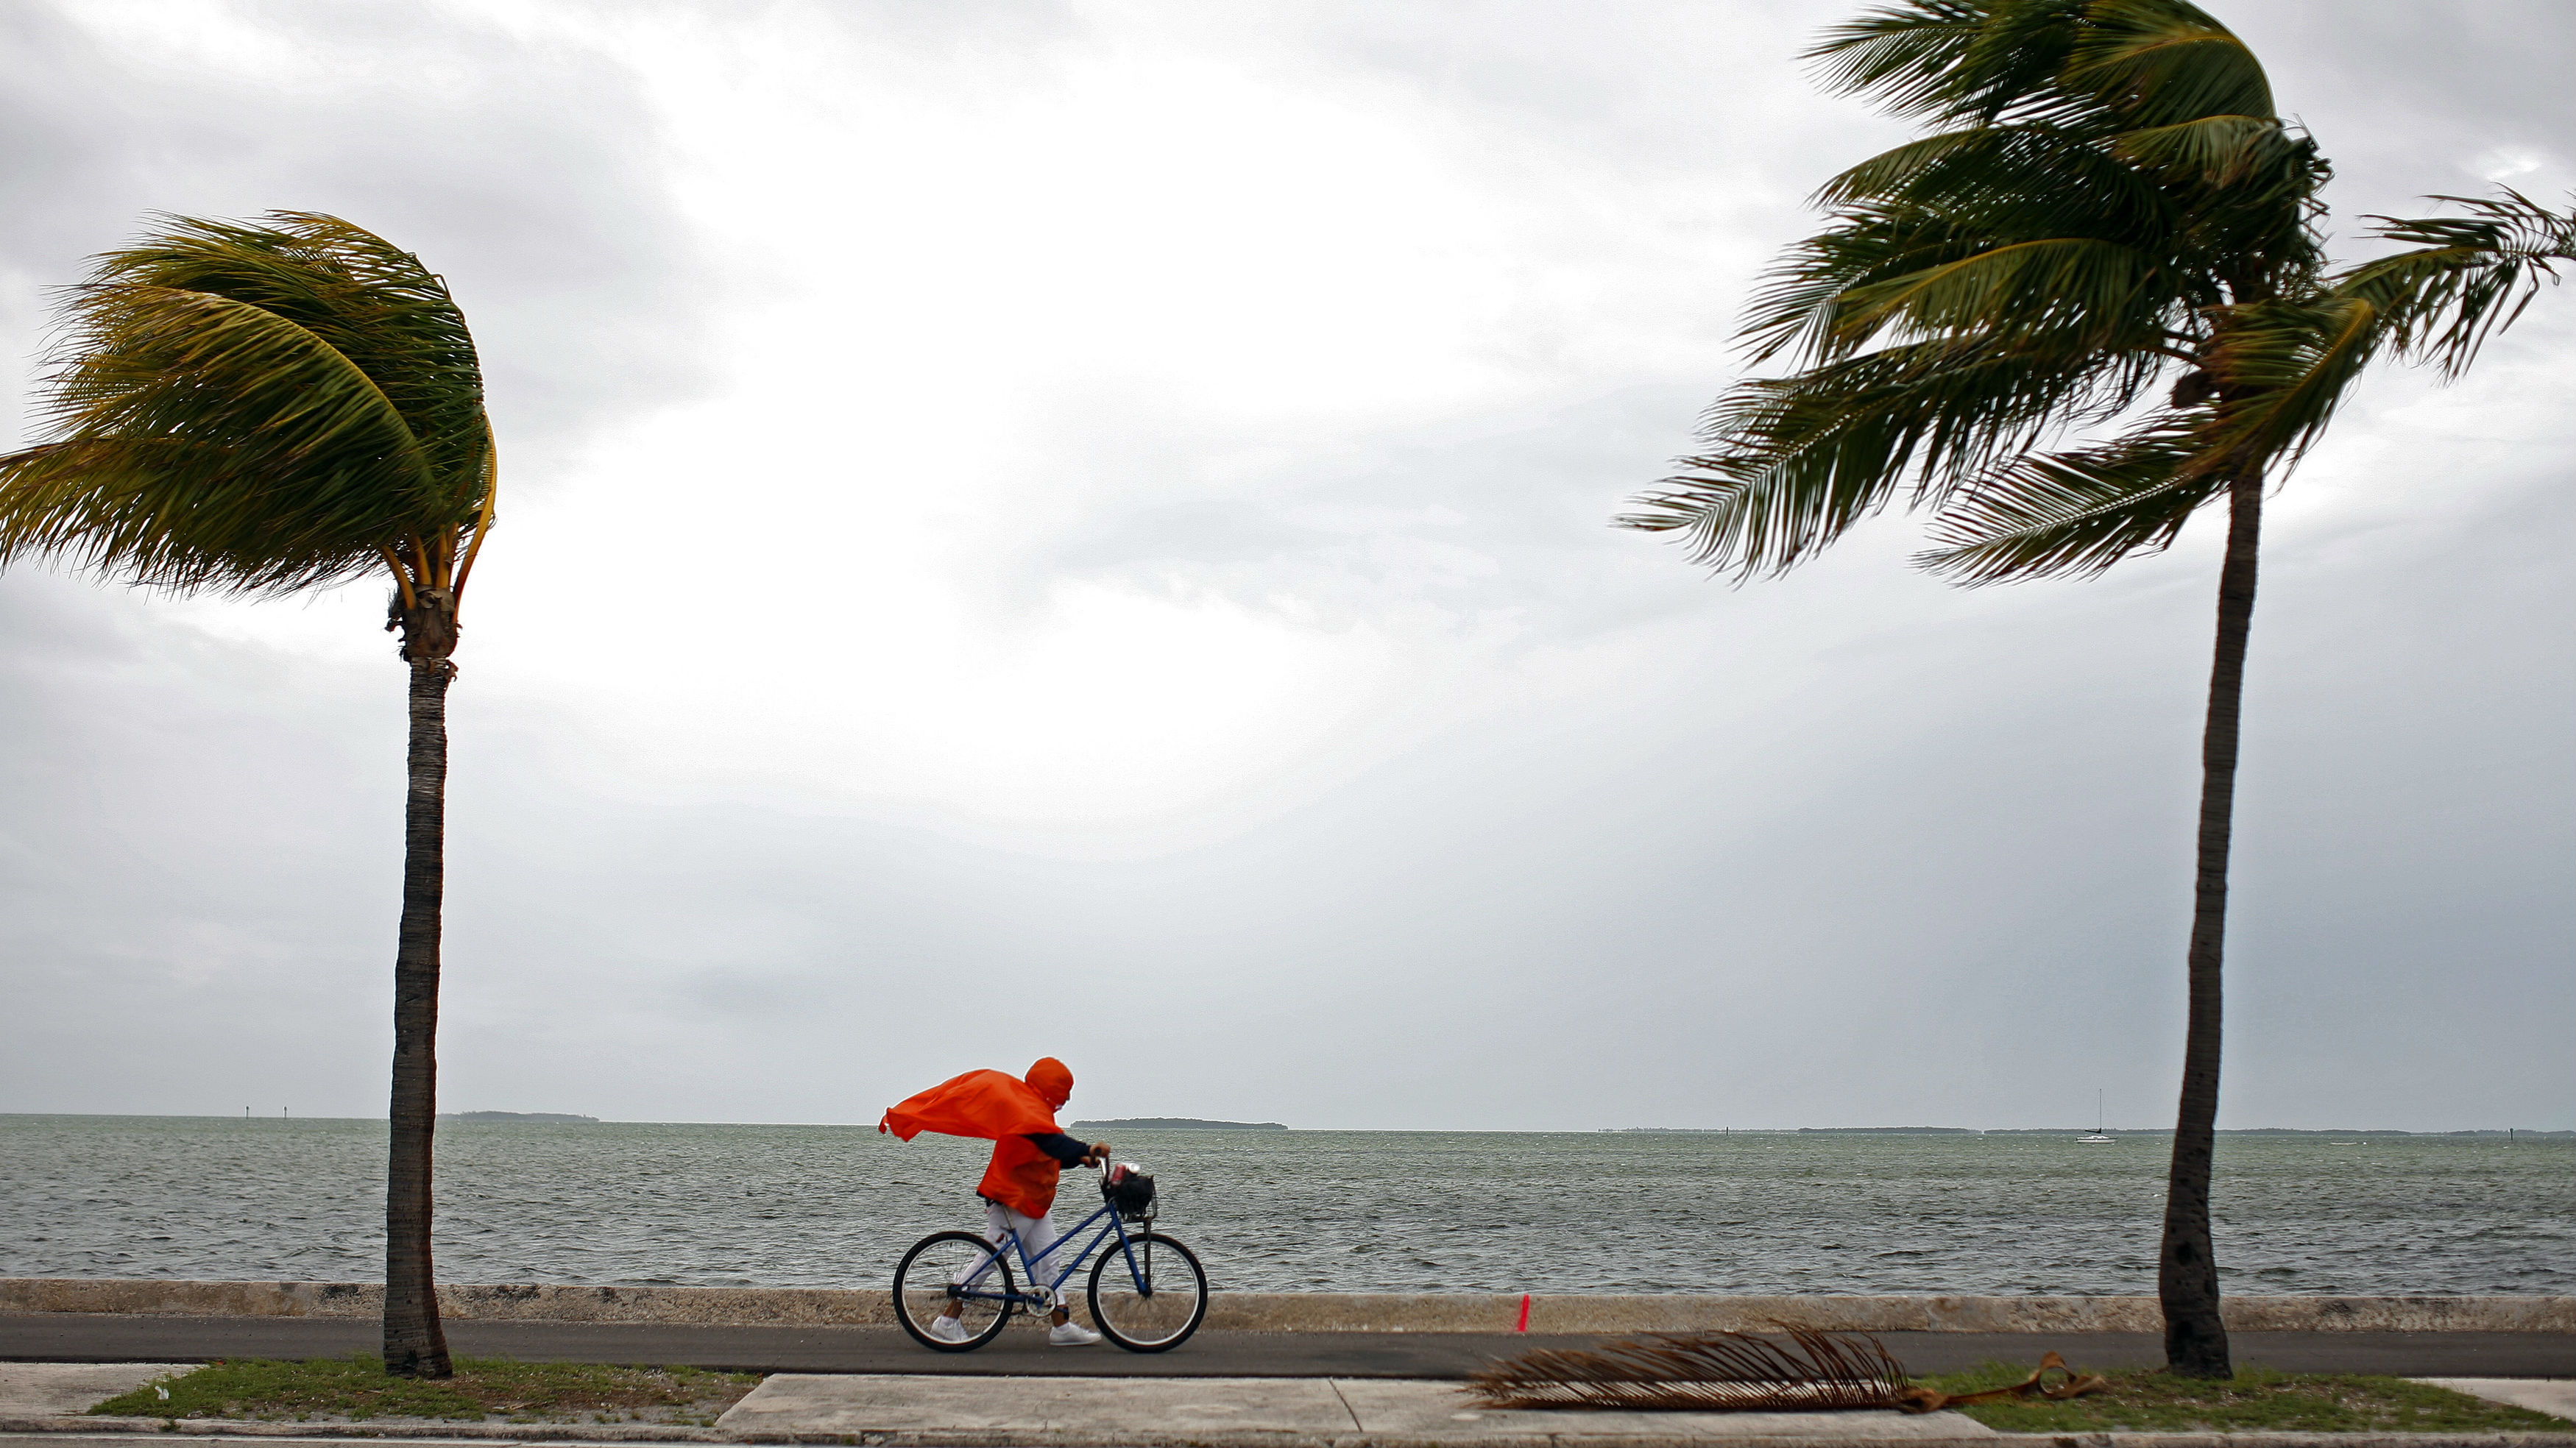 A woman rides a bike in between two palm trees.